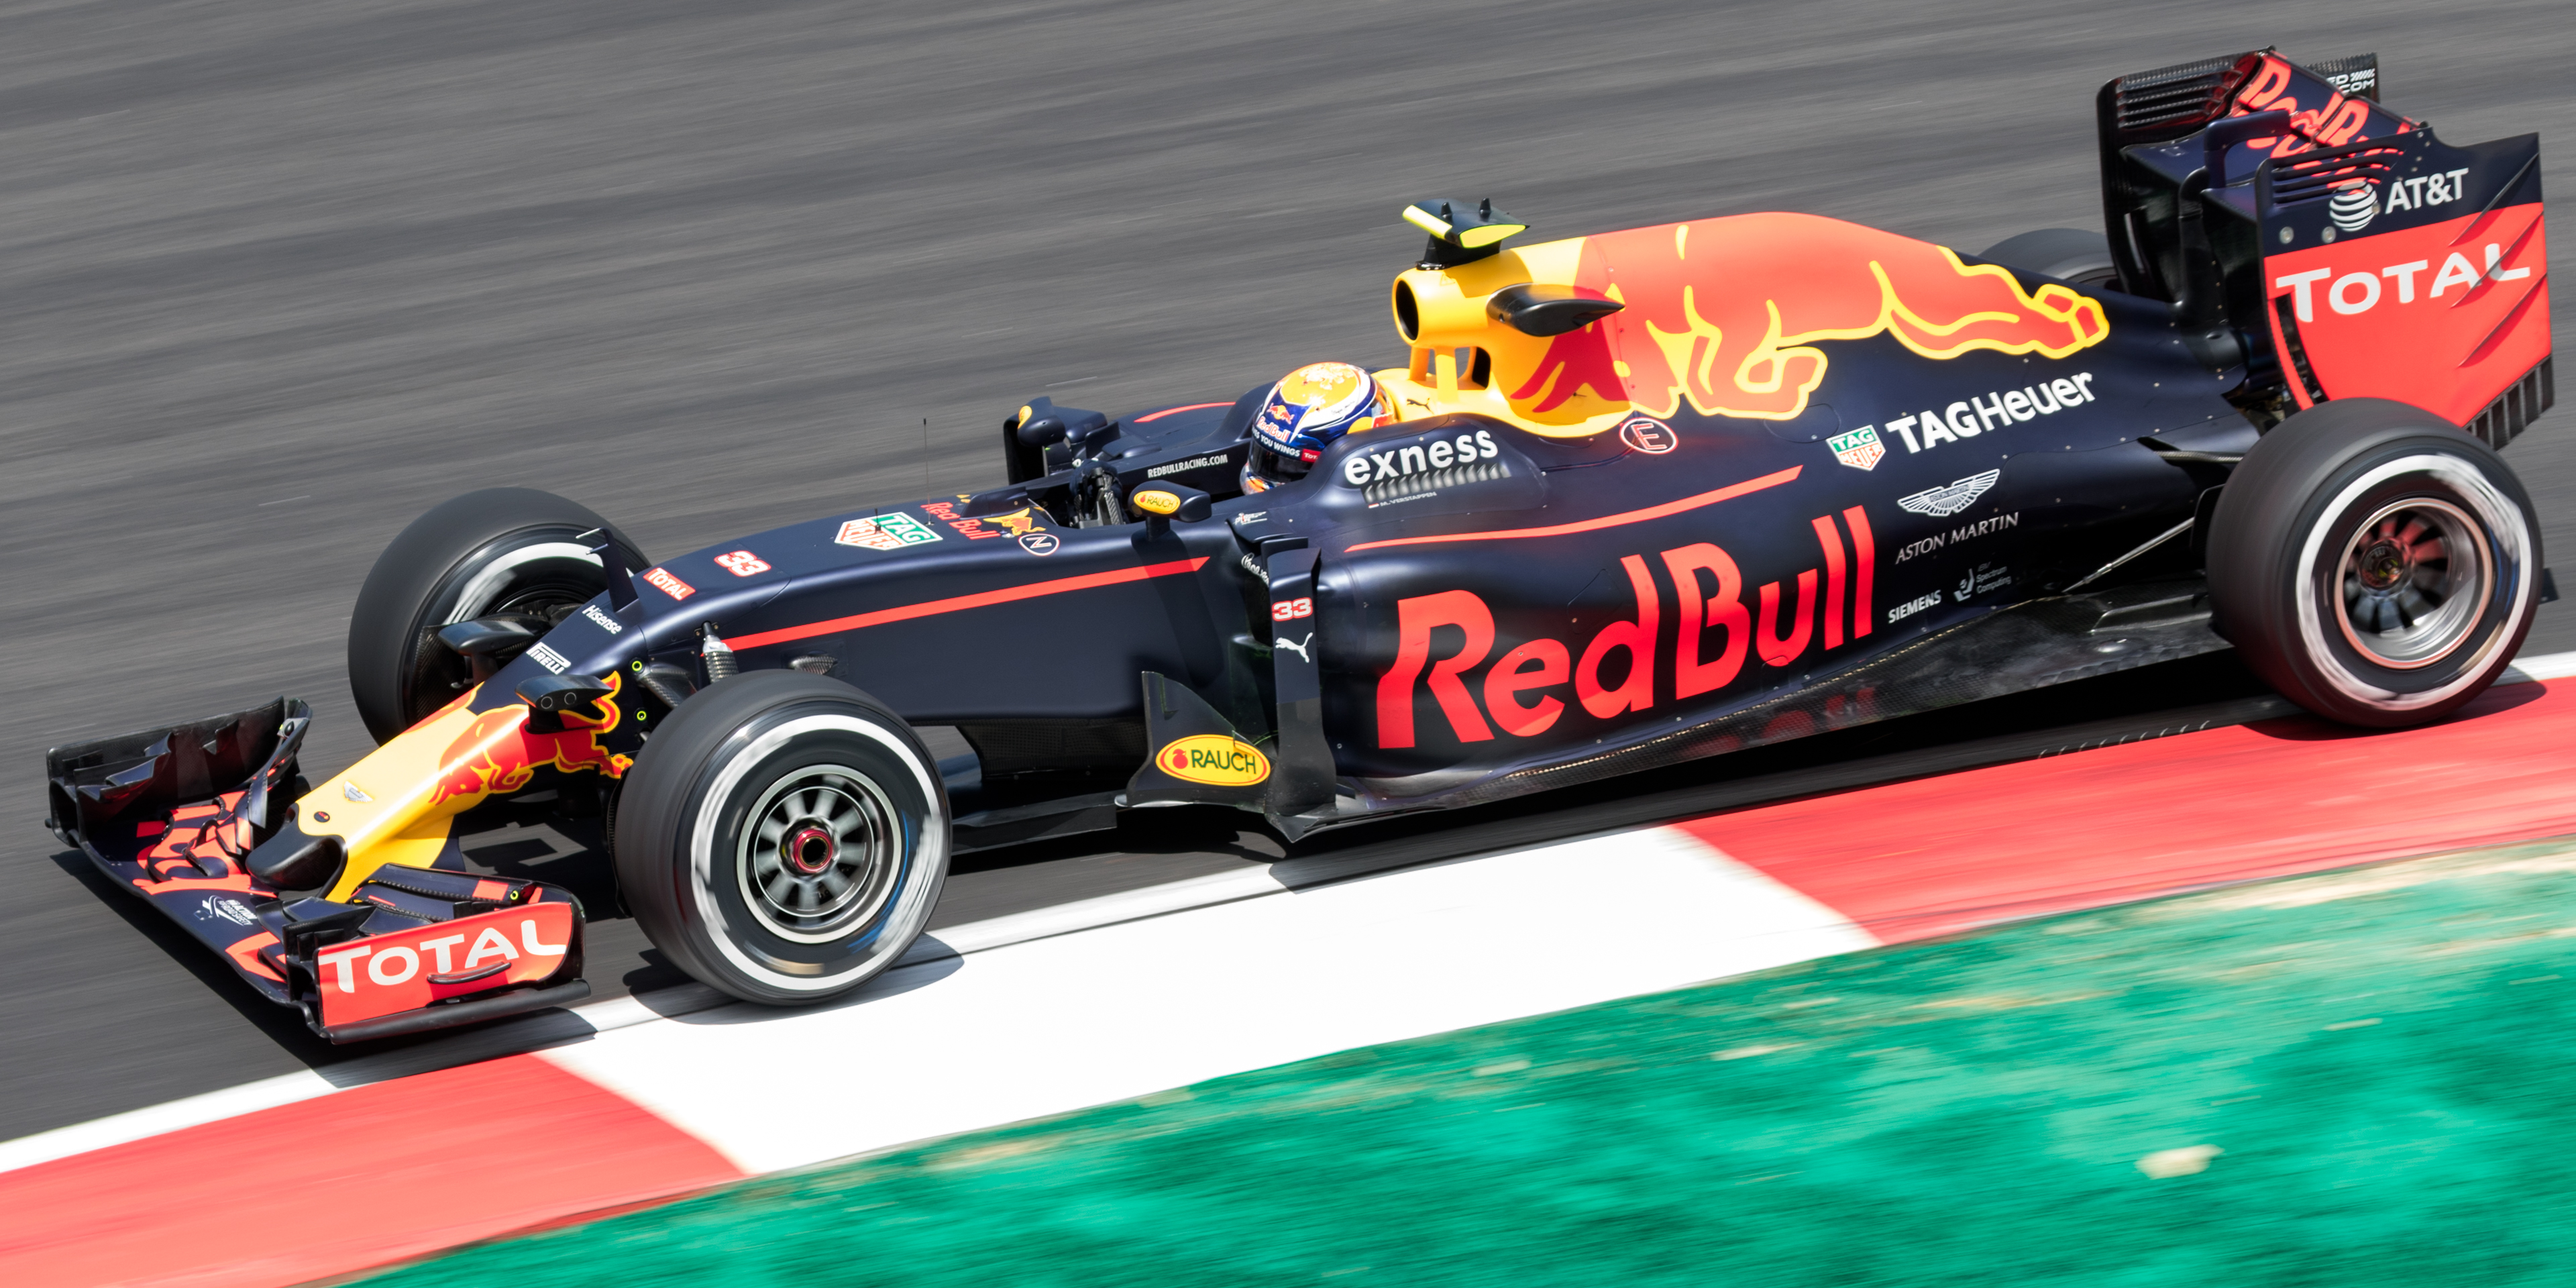 Red Bull Rb12 Wikipedia